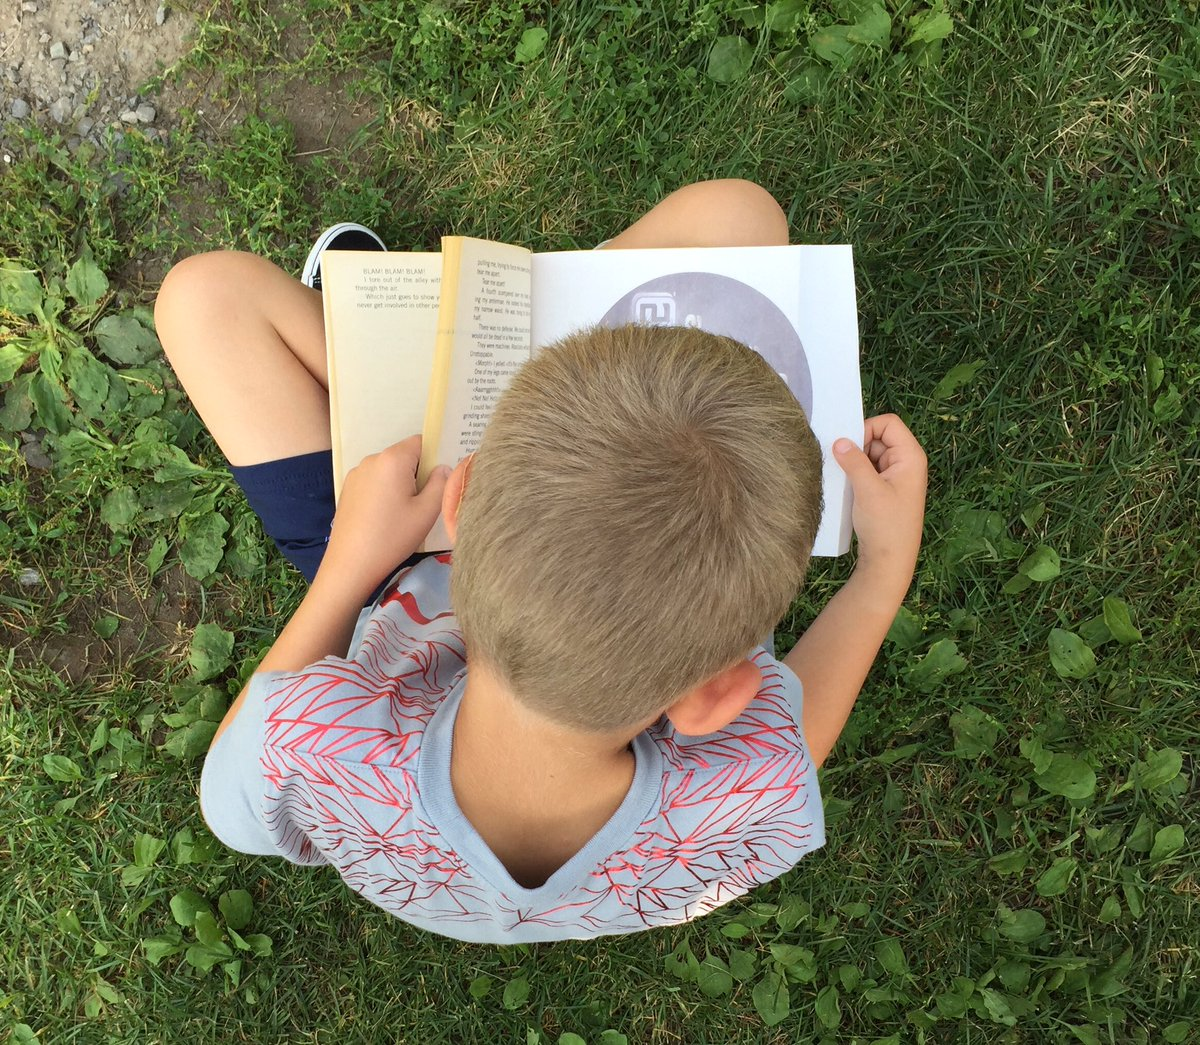 test Twitter Media - Reading outside on a perfect day!#ottawaschools #natureschool#summeratlast https://t.co/LJsKsLDjEA